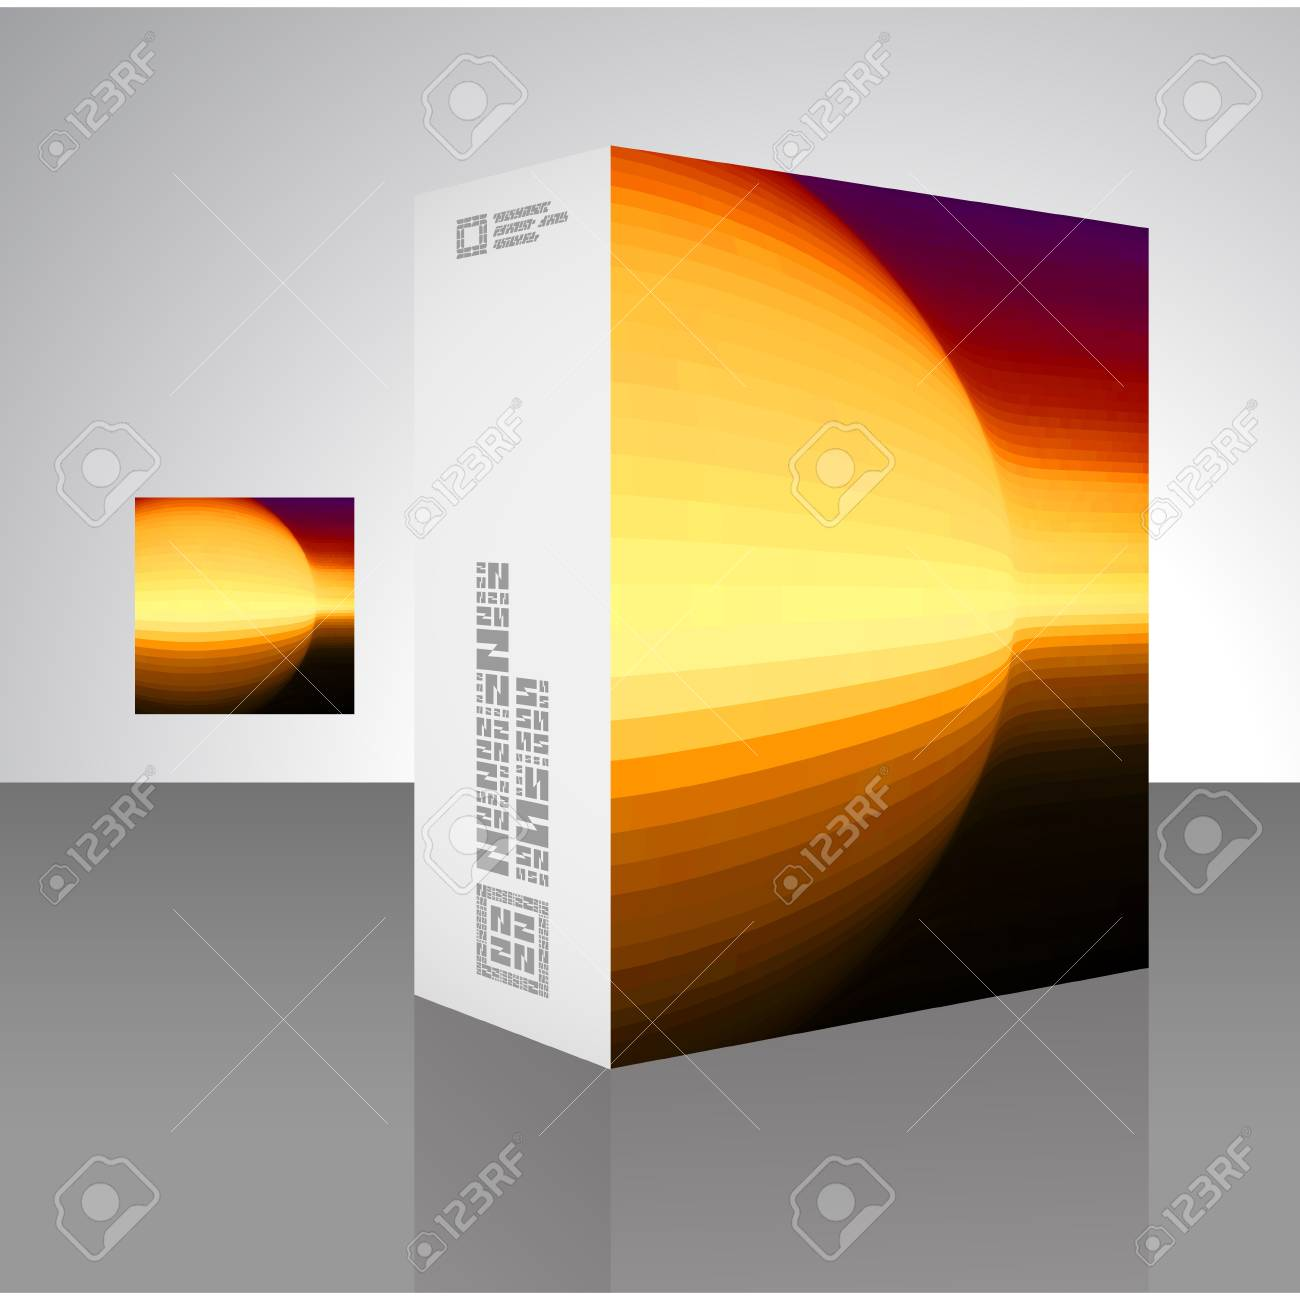 Packaging box Stock Vector - 18352110